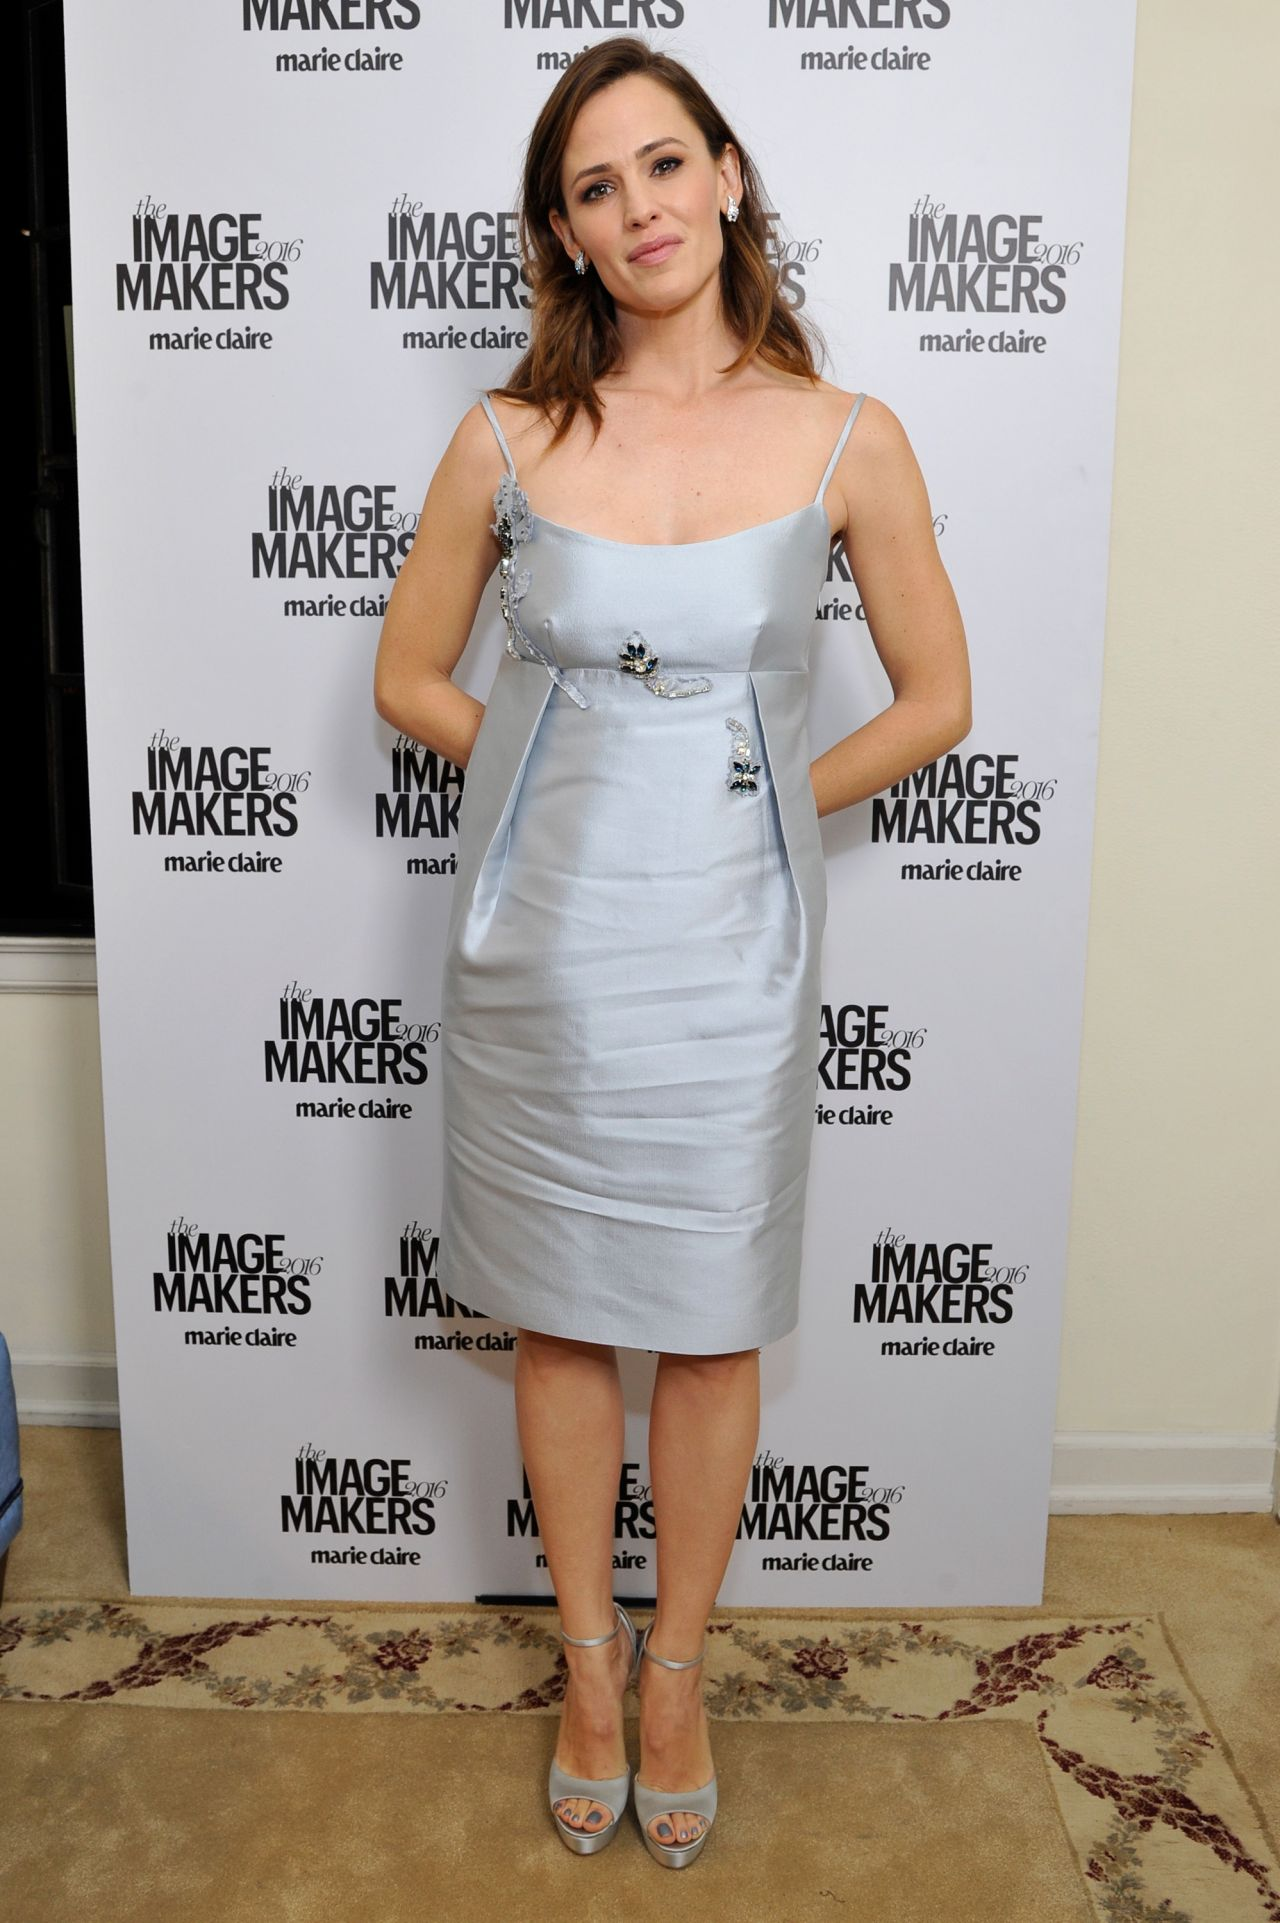 jennifer-garner-2016-marie-claire-s-image-maker-awards-in-los-angeles-ca-1